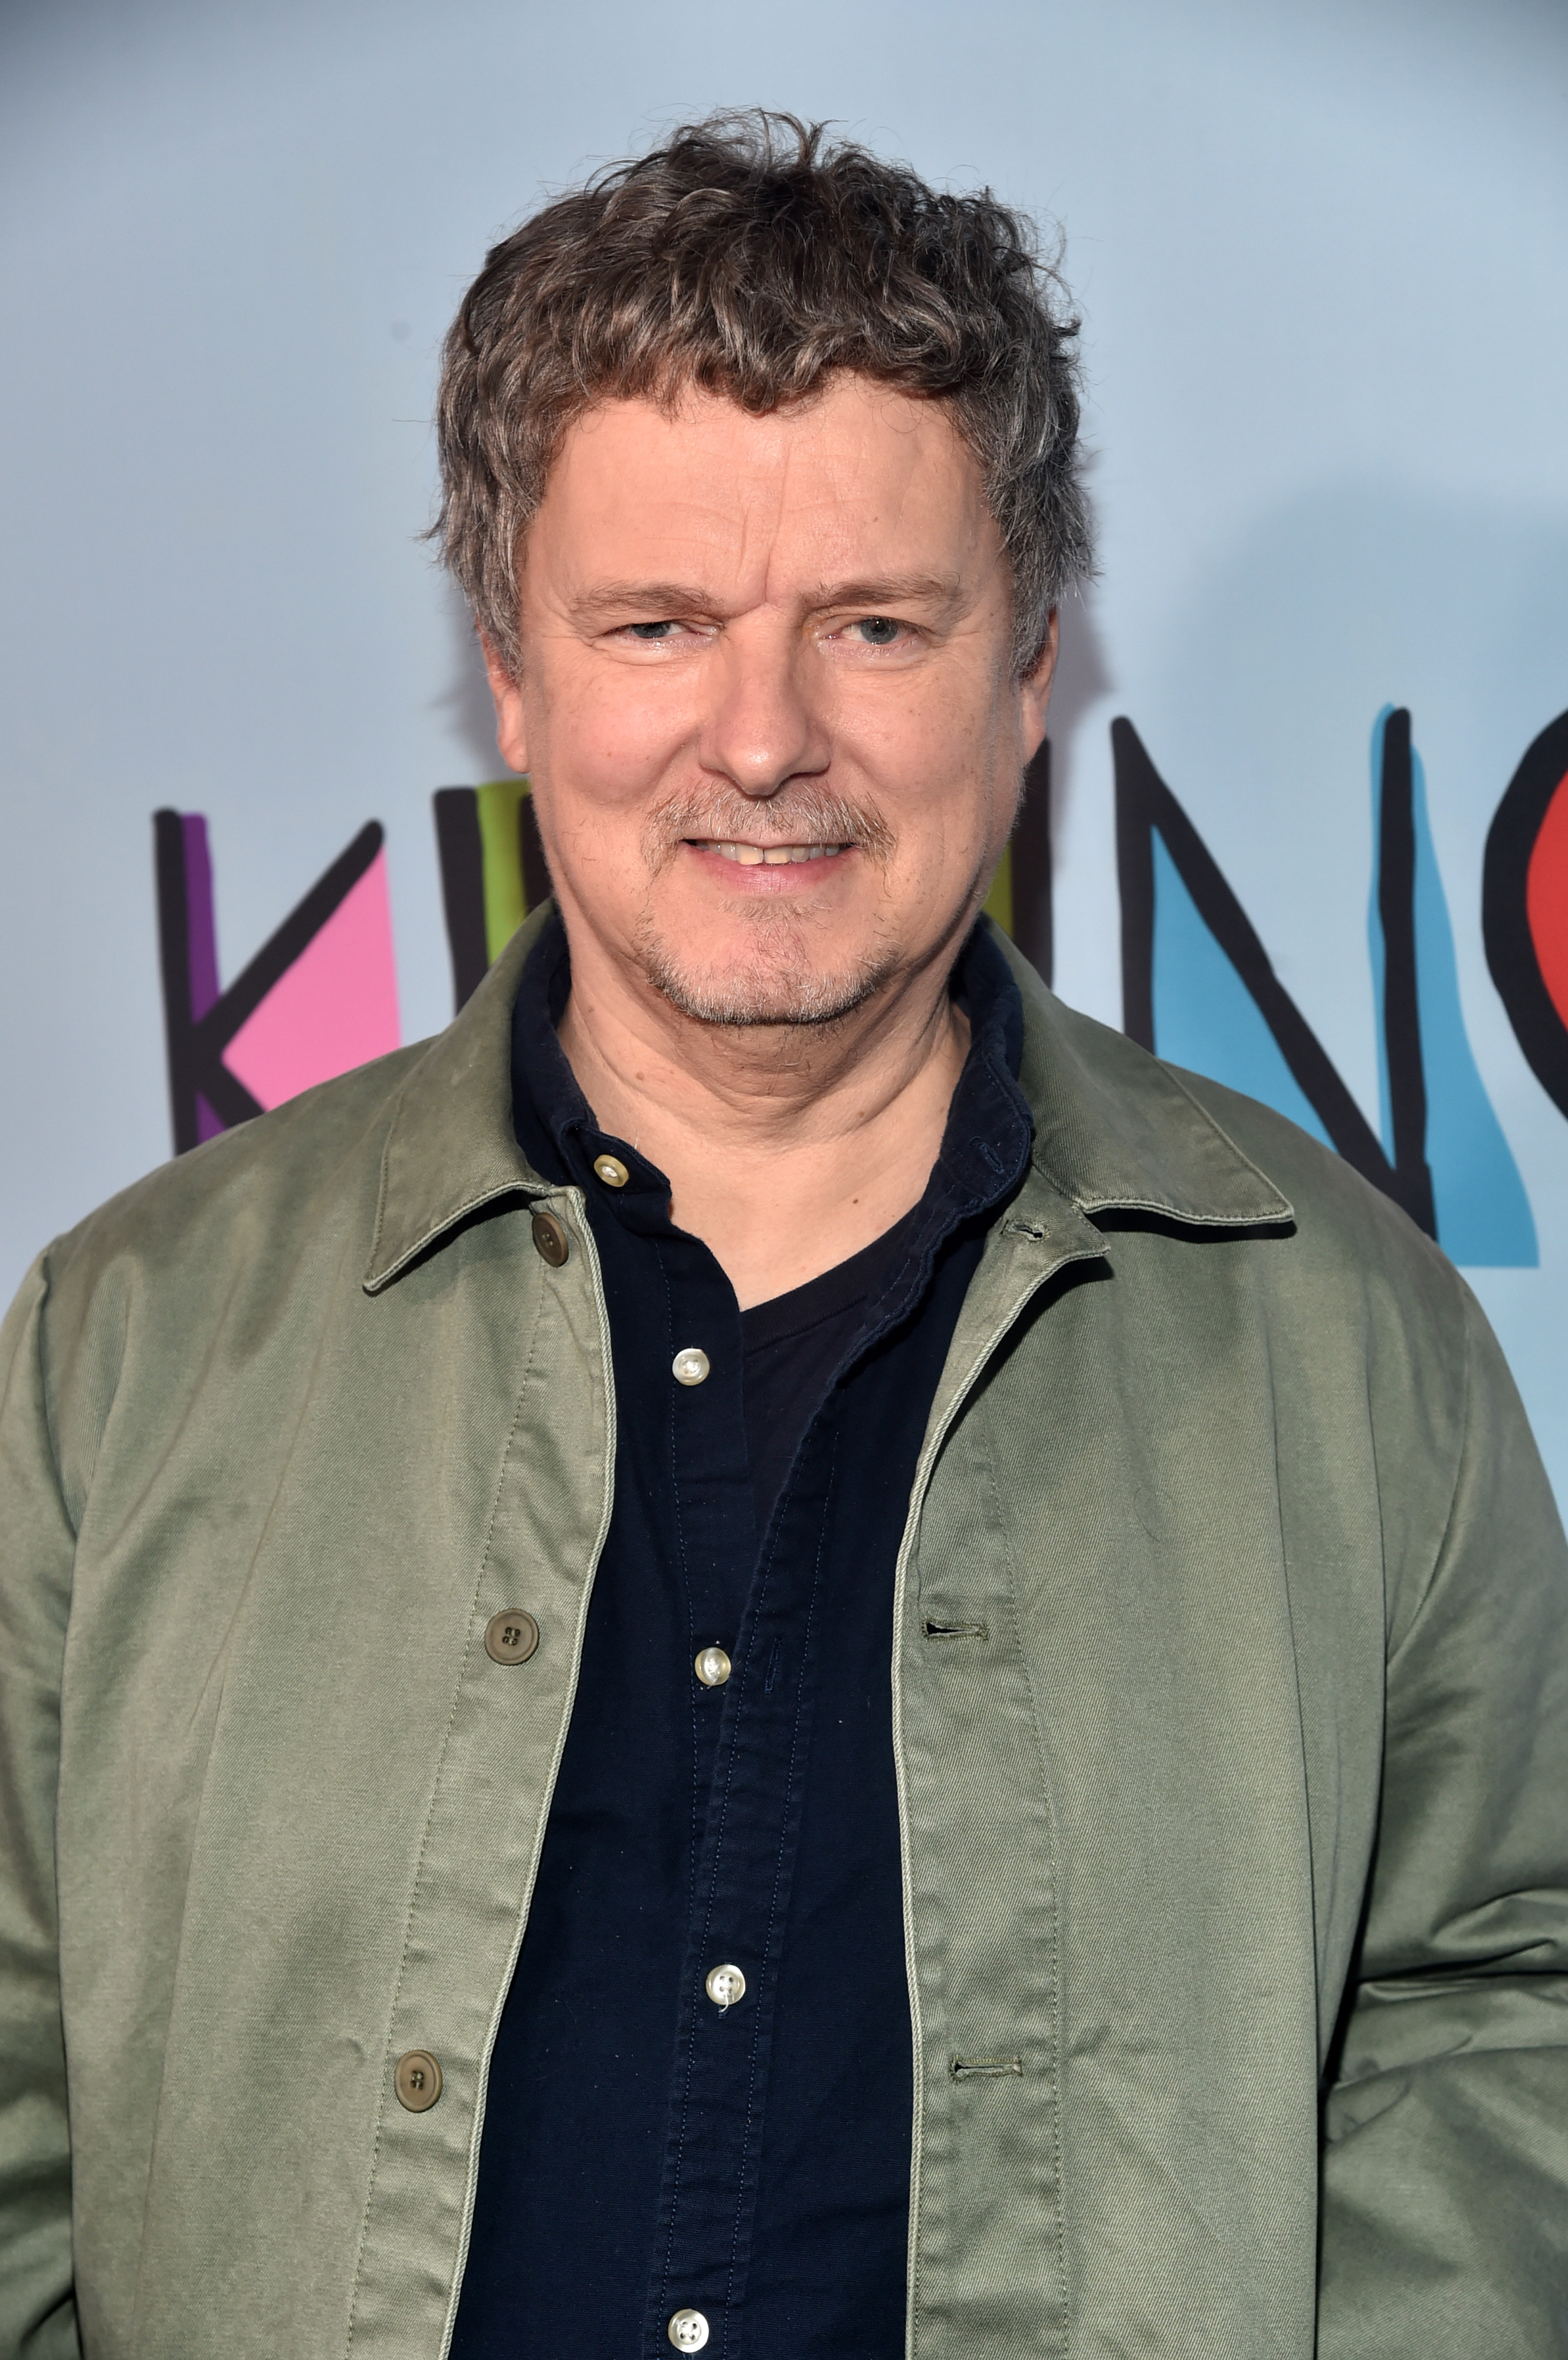 Michel Gondry attends the premiere of Showtime's 'Kidding' at The Cinerama Dome on September 5, 2018 in Los Angeles, California.